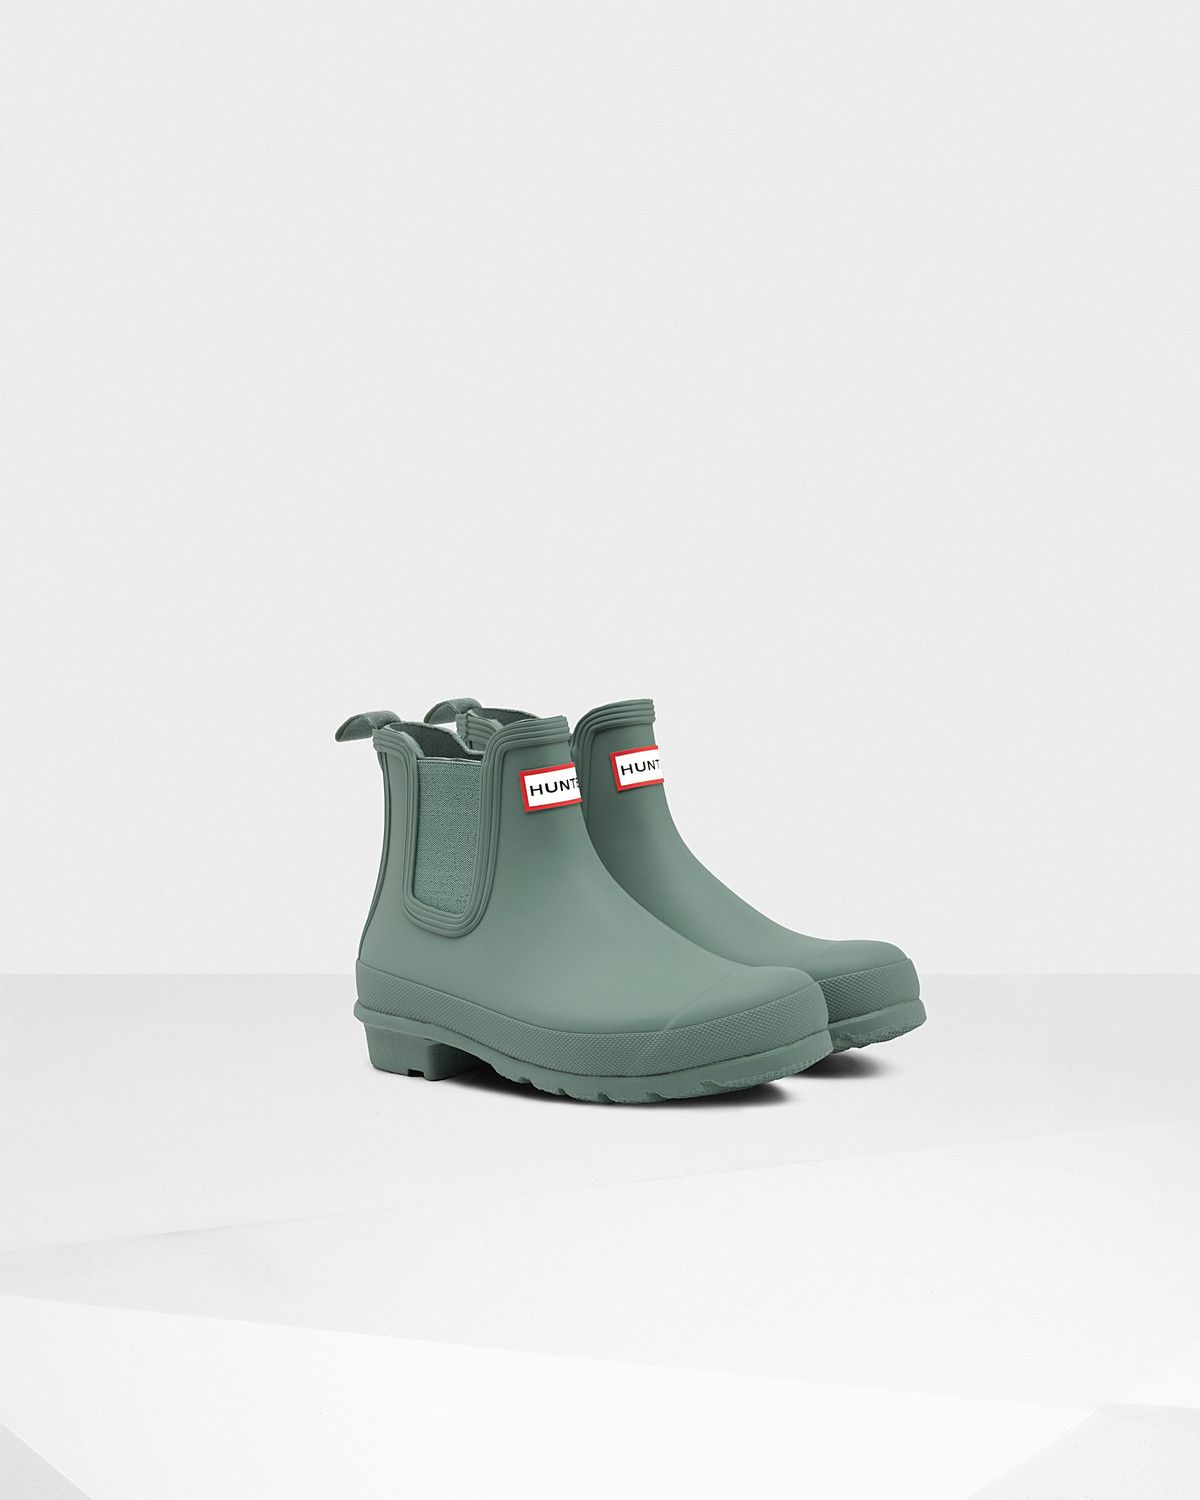 7294e97c7 Womens Green Chelsea Boots | Official US Hunter Boots Store $135 ...